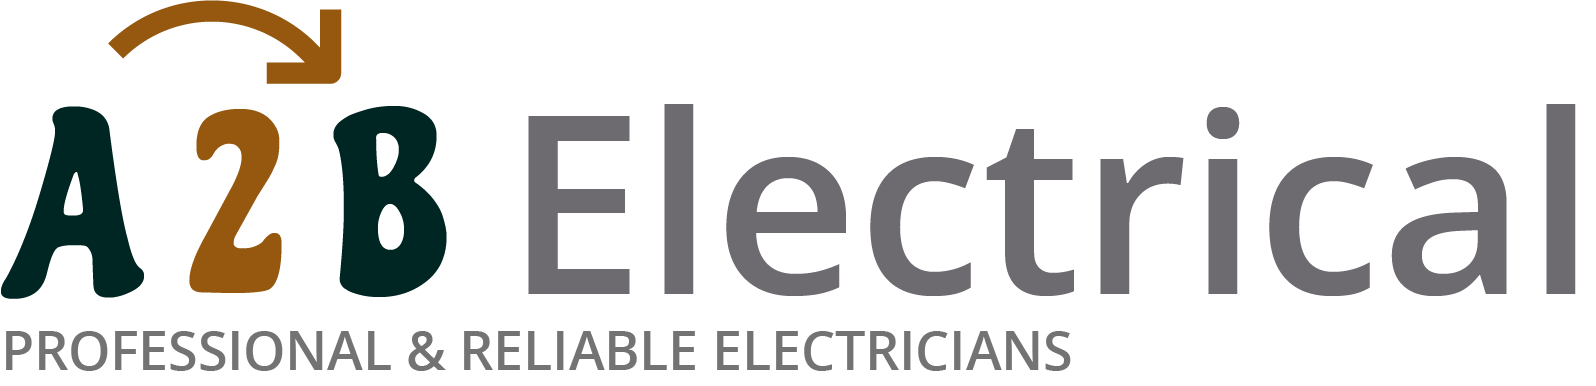 If you have electrical wiring problems in Brixton, we can provide an electrician to have a look for you.